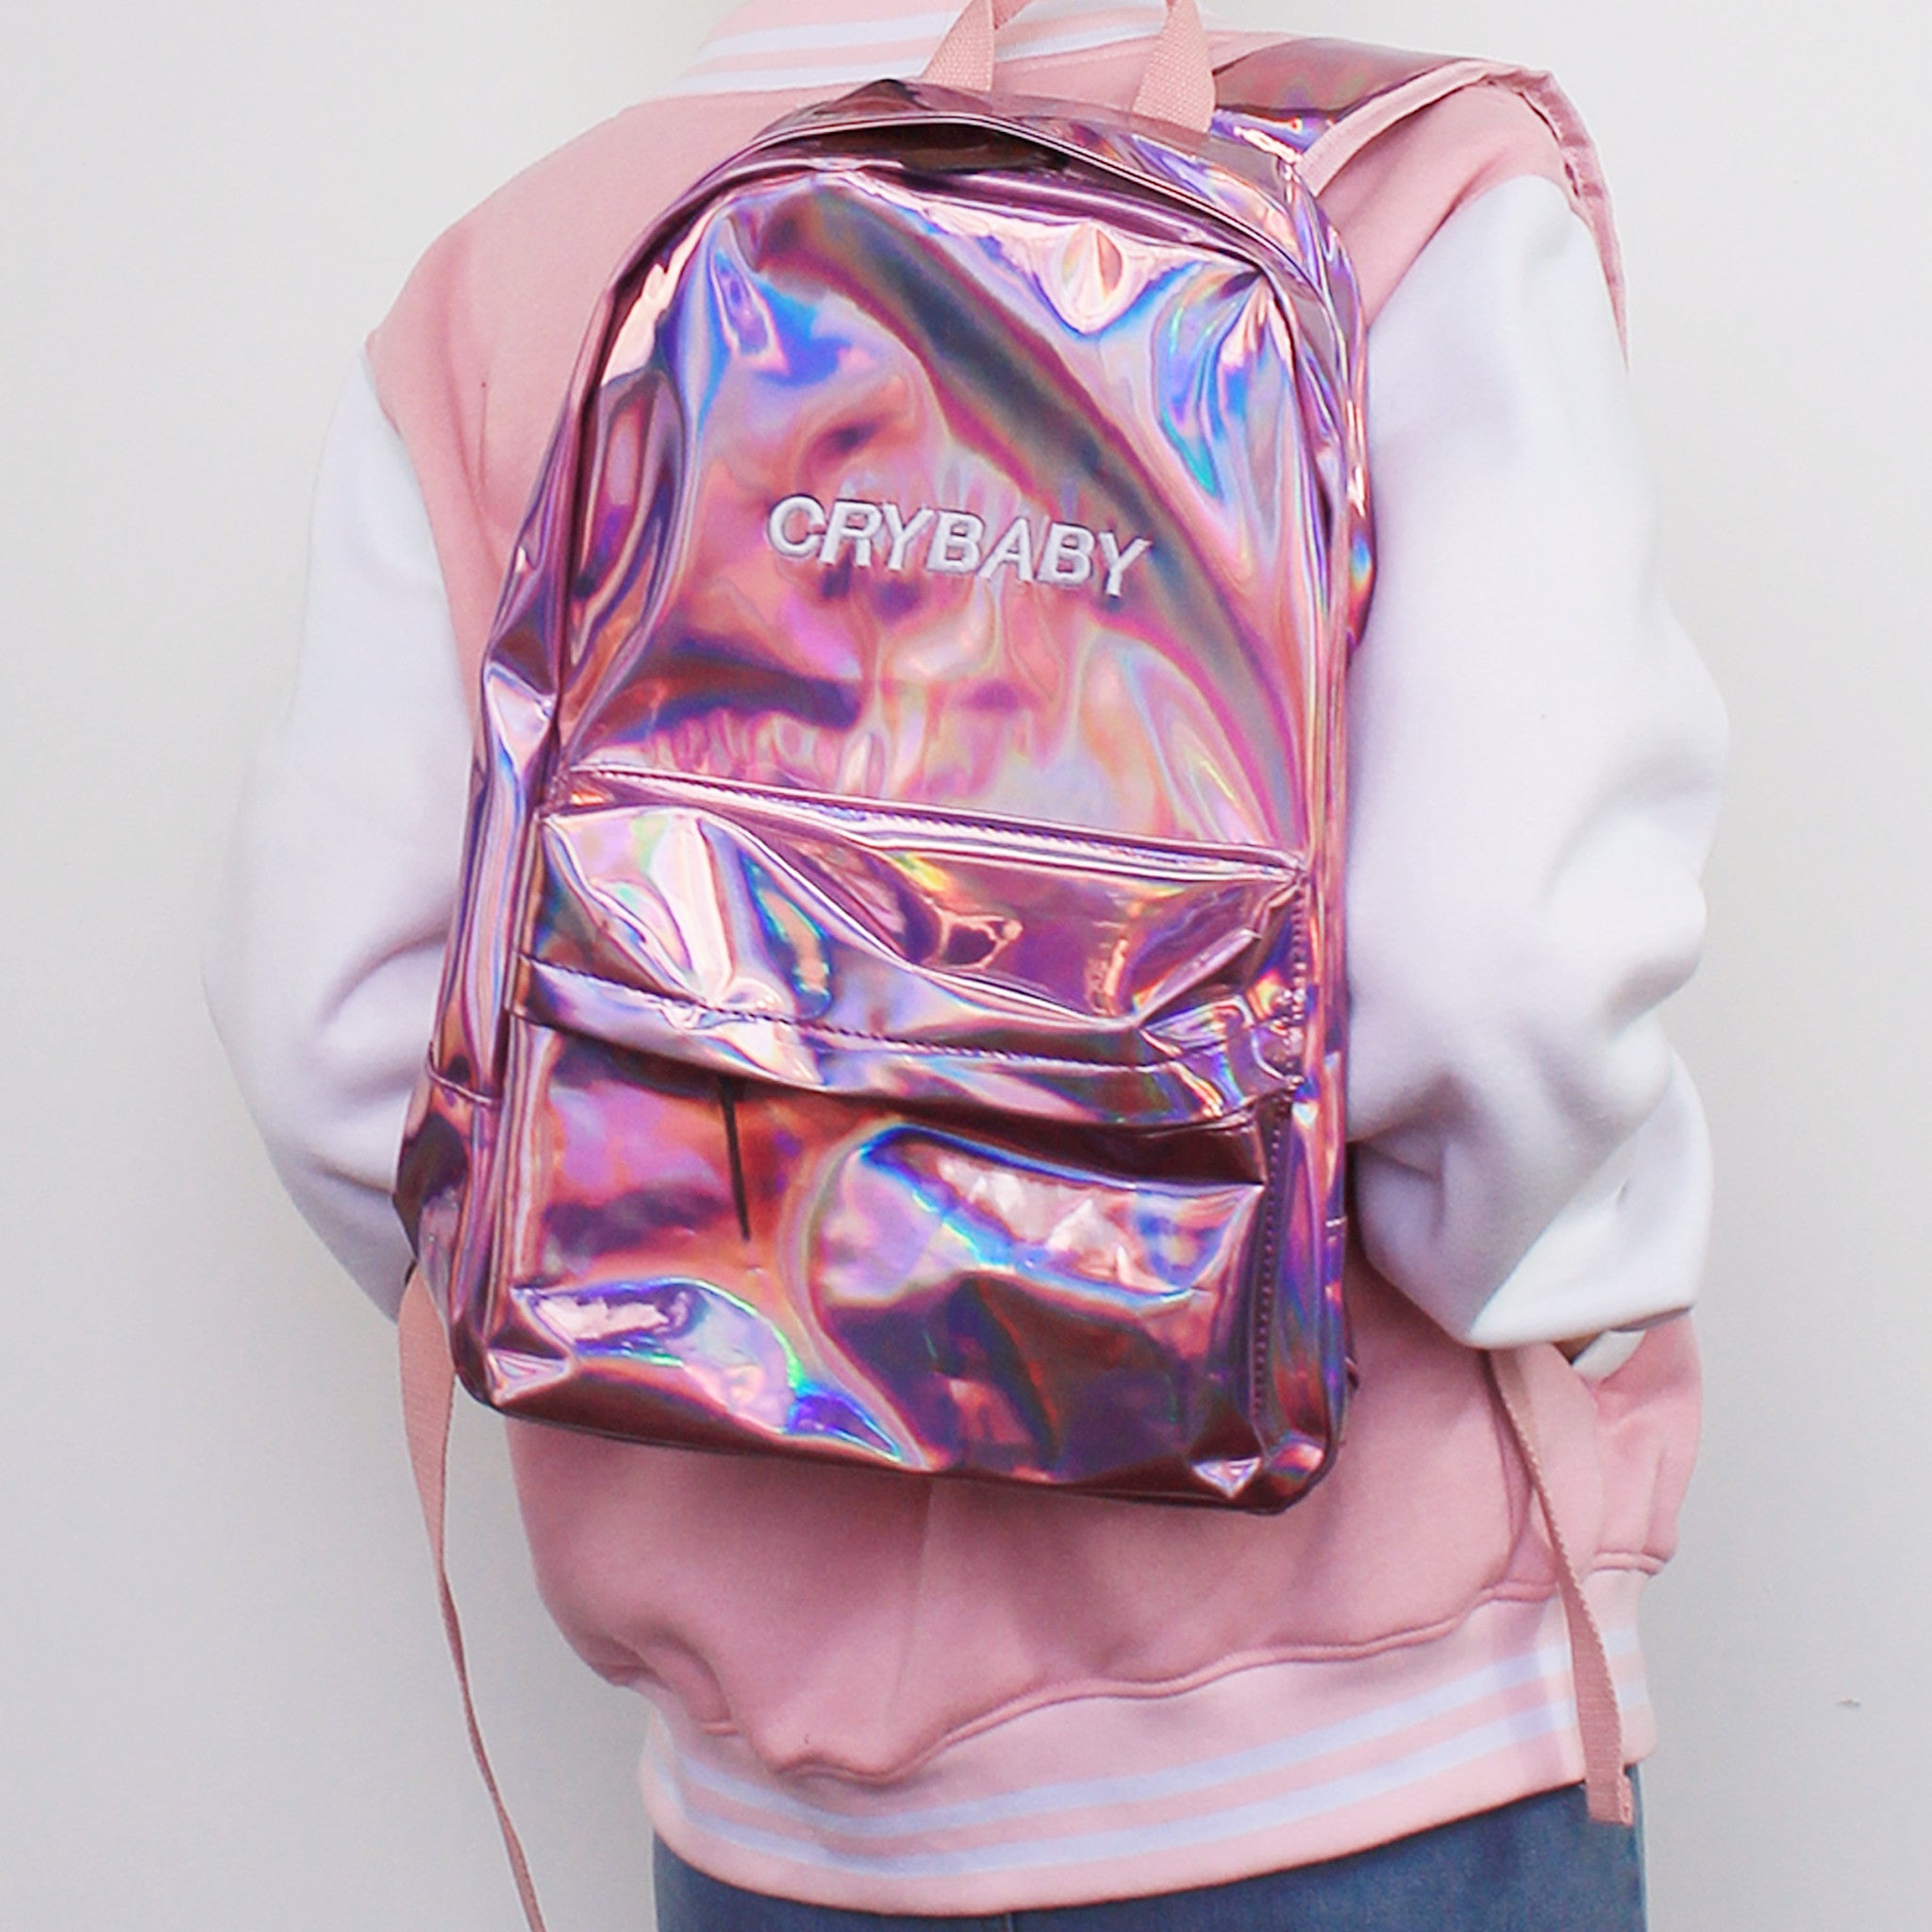 Get Now Koko Holographic Crybaby Backpack Kokopiecoco